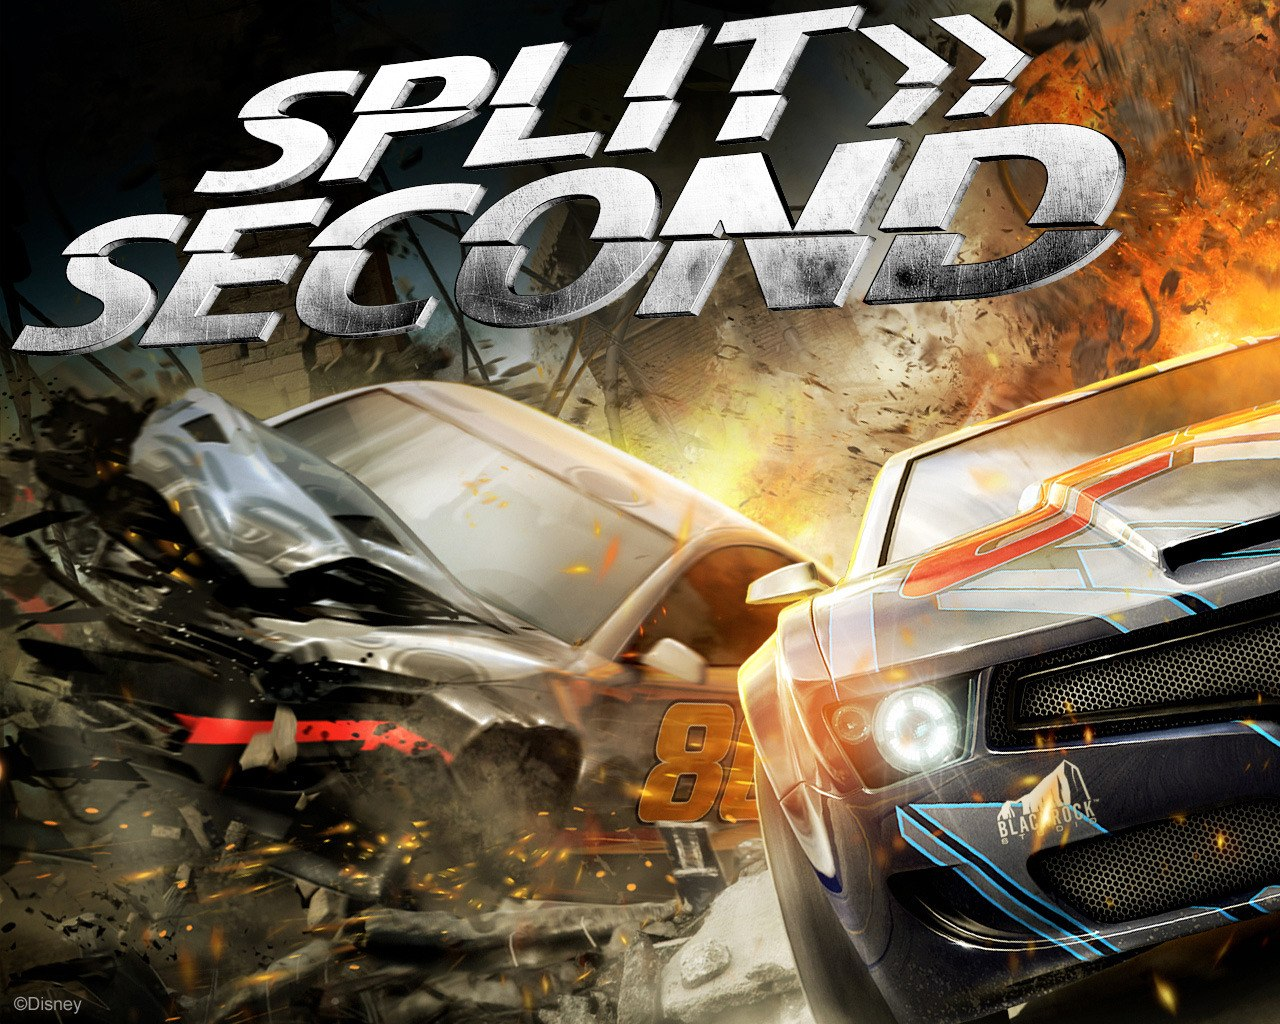 Split Second 26266 1280x720 px